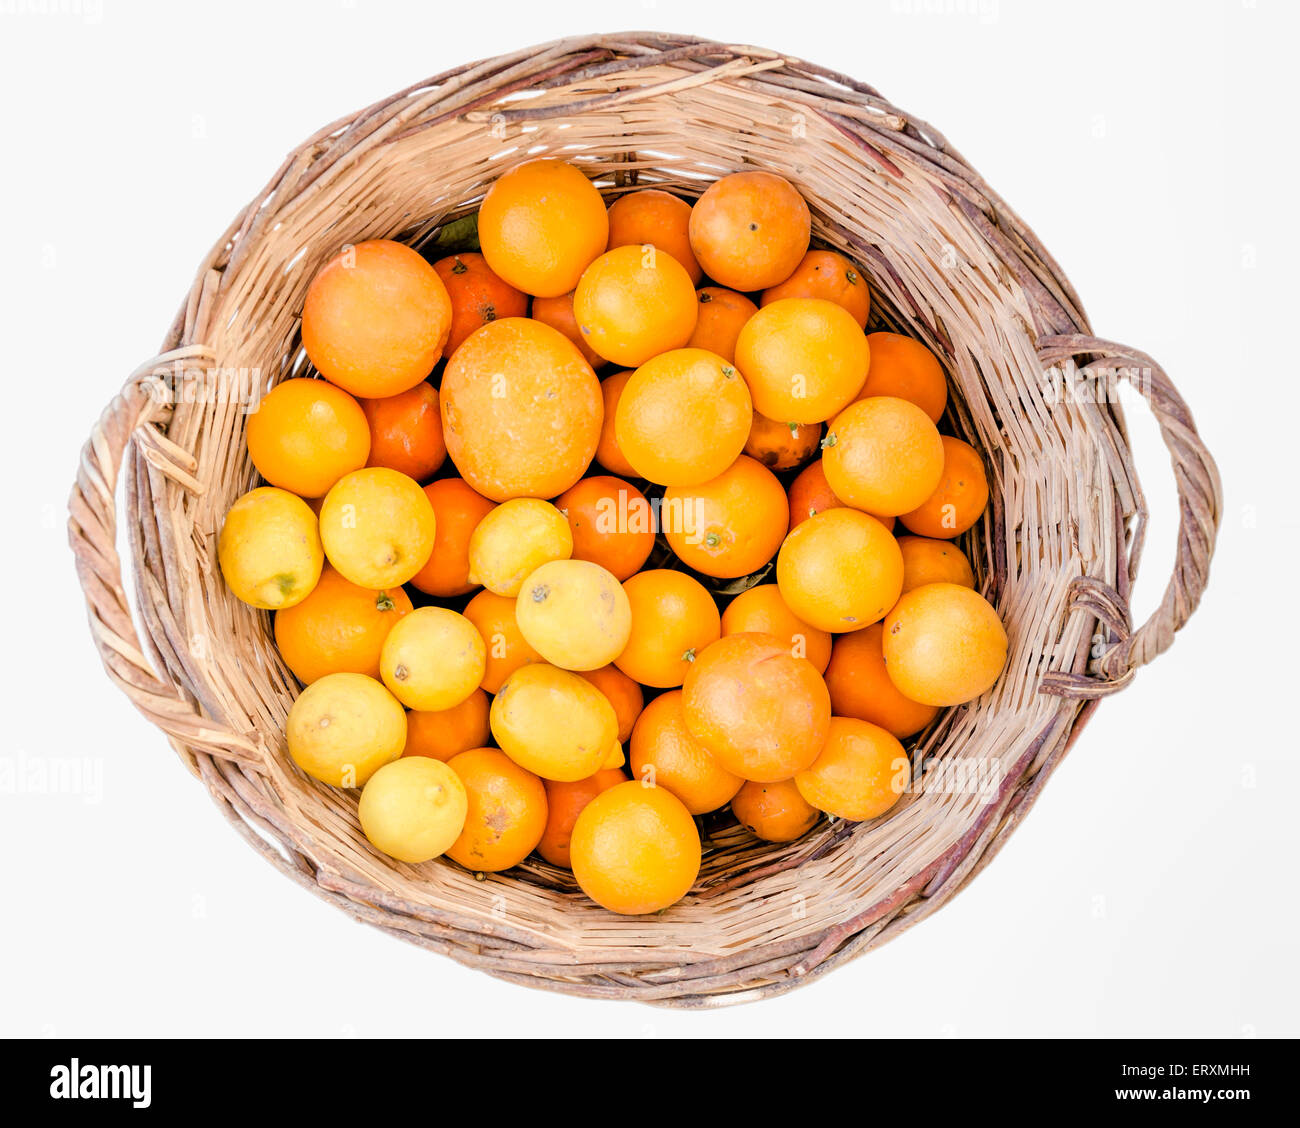 Basket filled with oranges and lemons on a white background - Stock Image